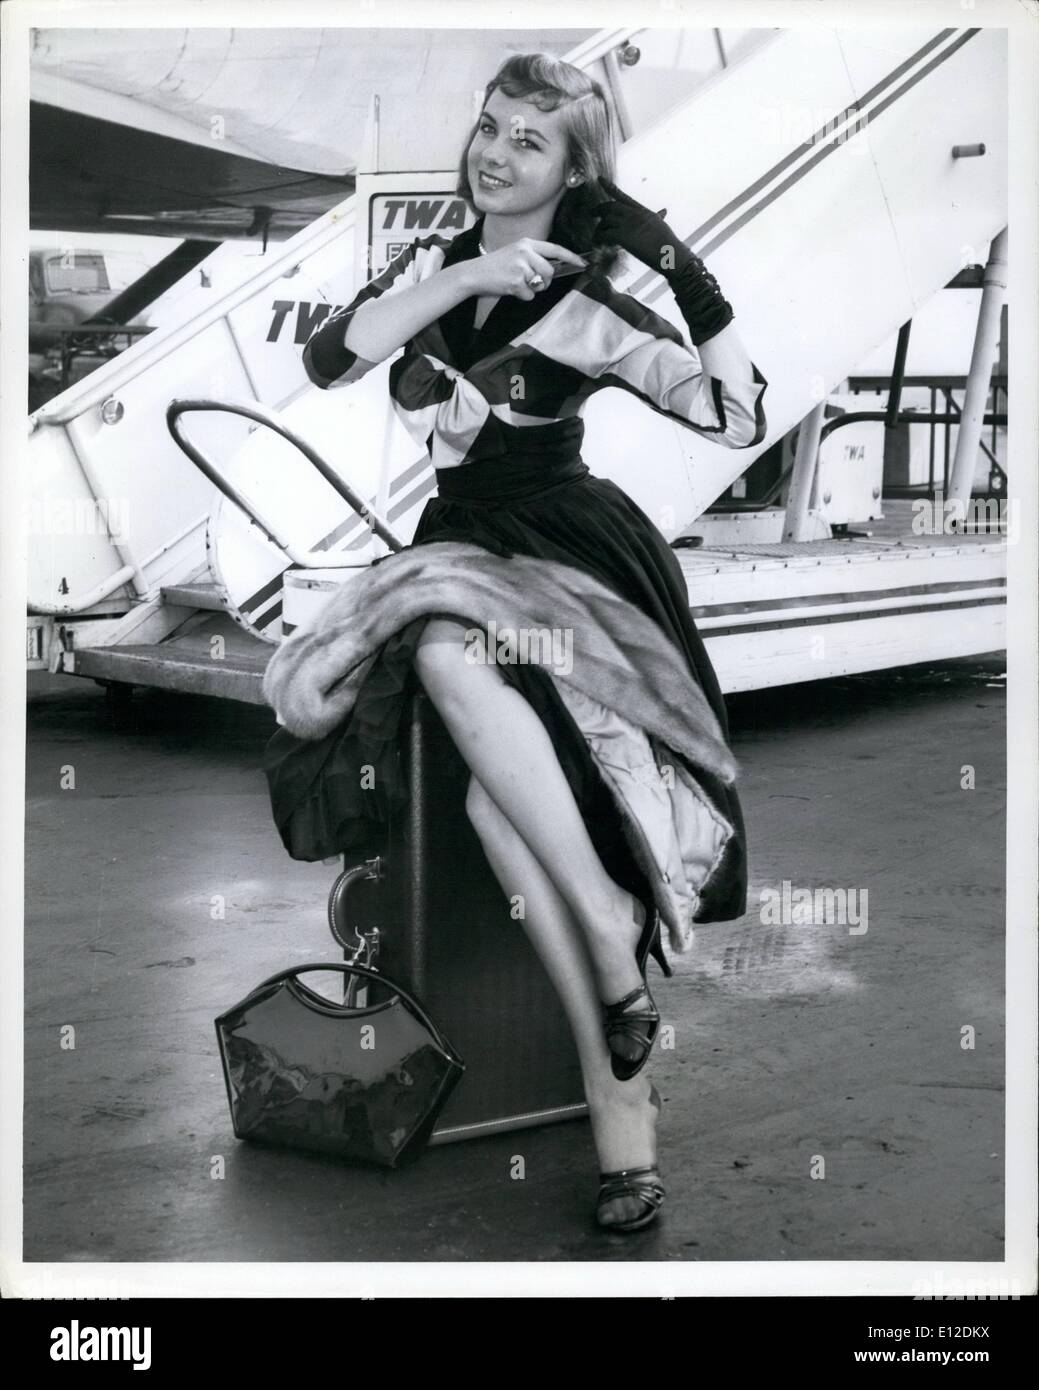 Dec. 19, 2011 - Photo From TWA Ken Fletcher, Public Relations 380 Madison Ave., New York City Oxford 5-4525 Ext 701 (For Immediate Release) La Guardia Airport, N.Y., Aug 21st - Lynn Galvin, ''Miss New York State Amvets,'' Boards a TWA Constellation at La Guardia Airport today enroute to the Amvet Convention in St. Louis. - Stock Image